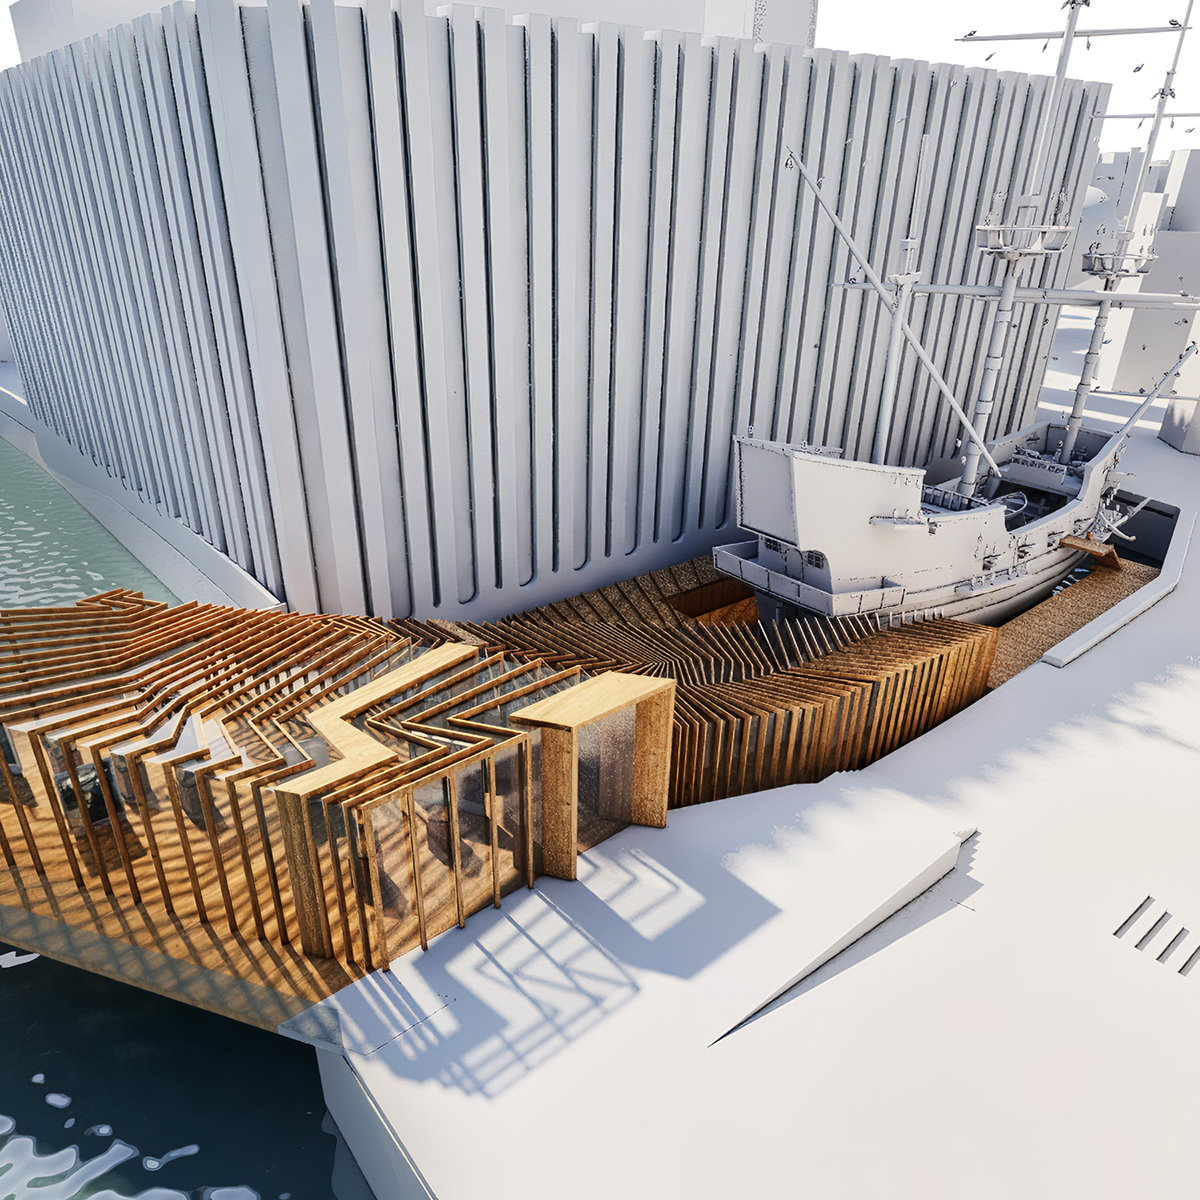 SPPARC Unveils Design for New Museum and Visitor Centre for the Golden Hinde